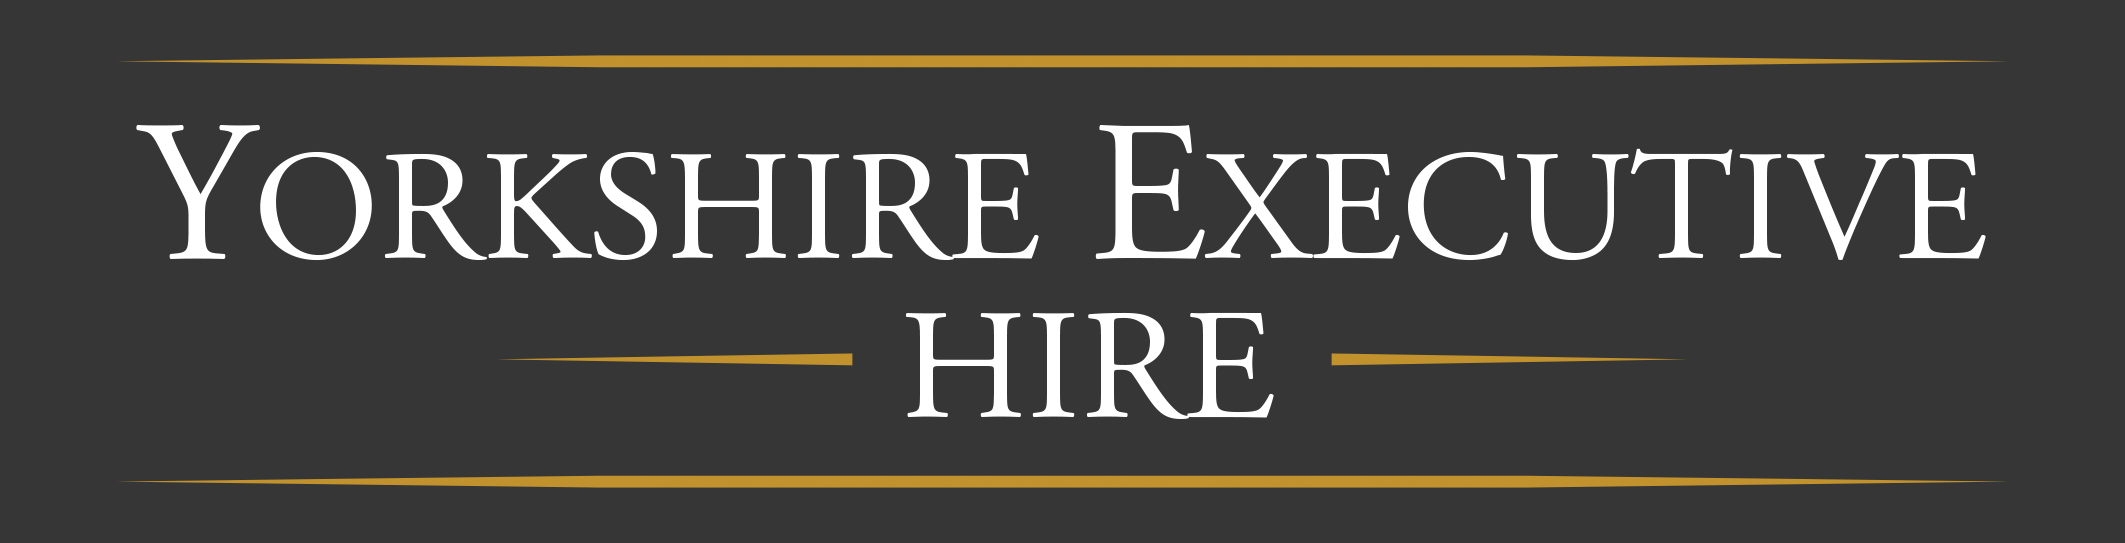 Yorkshire Executive Hire